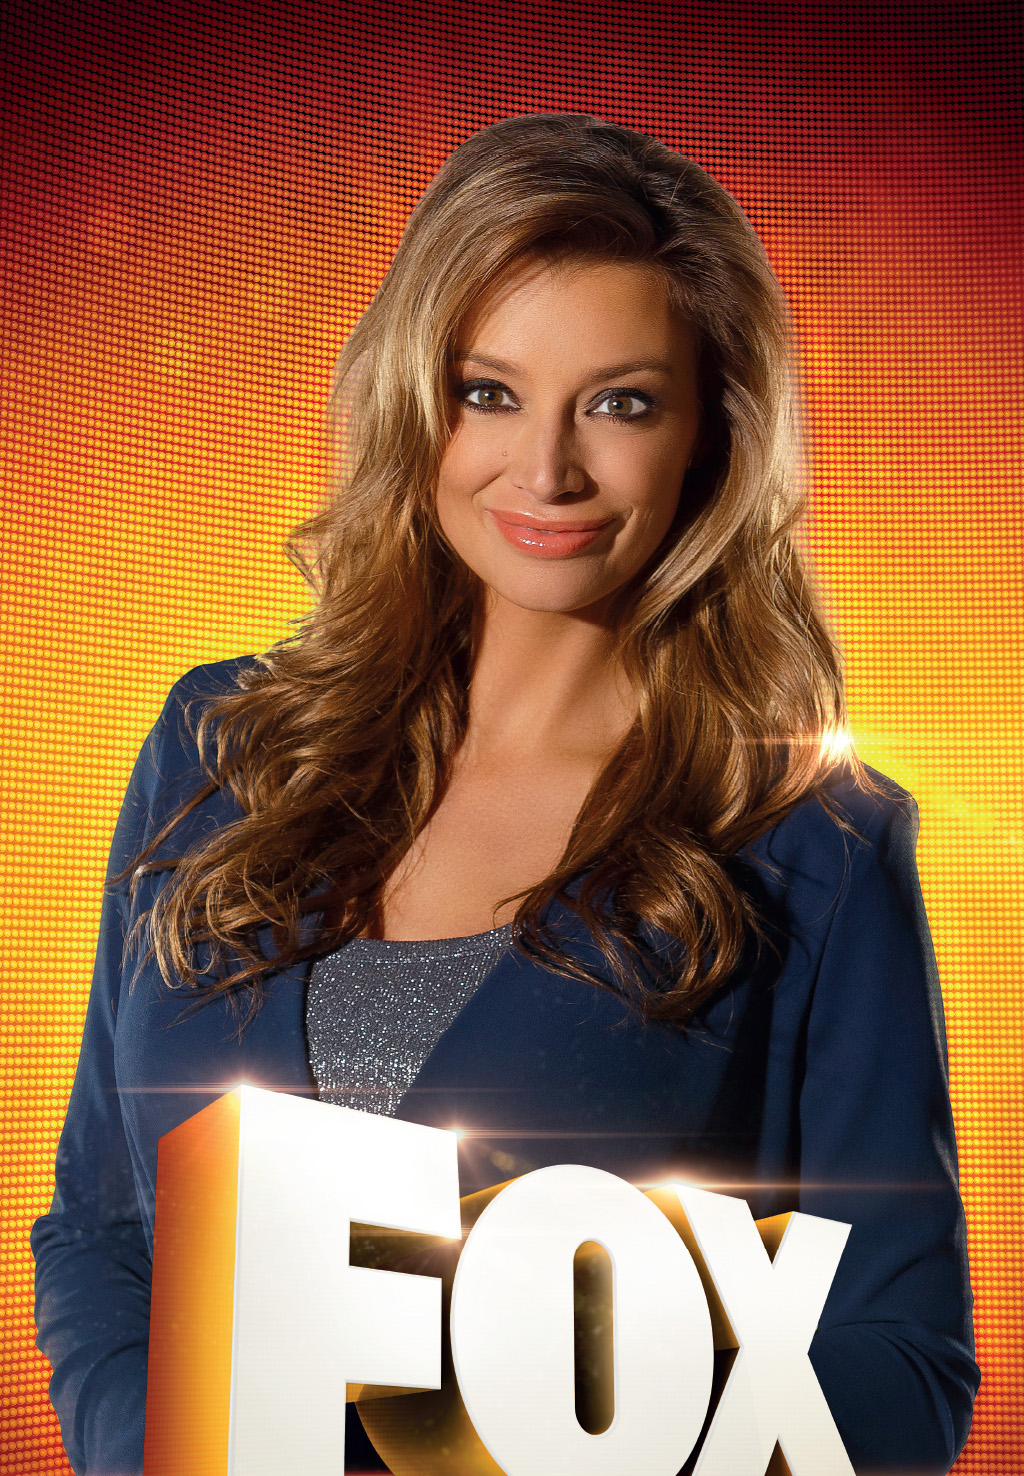 FOX TV - Véronique De Kock